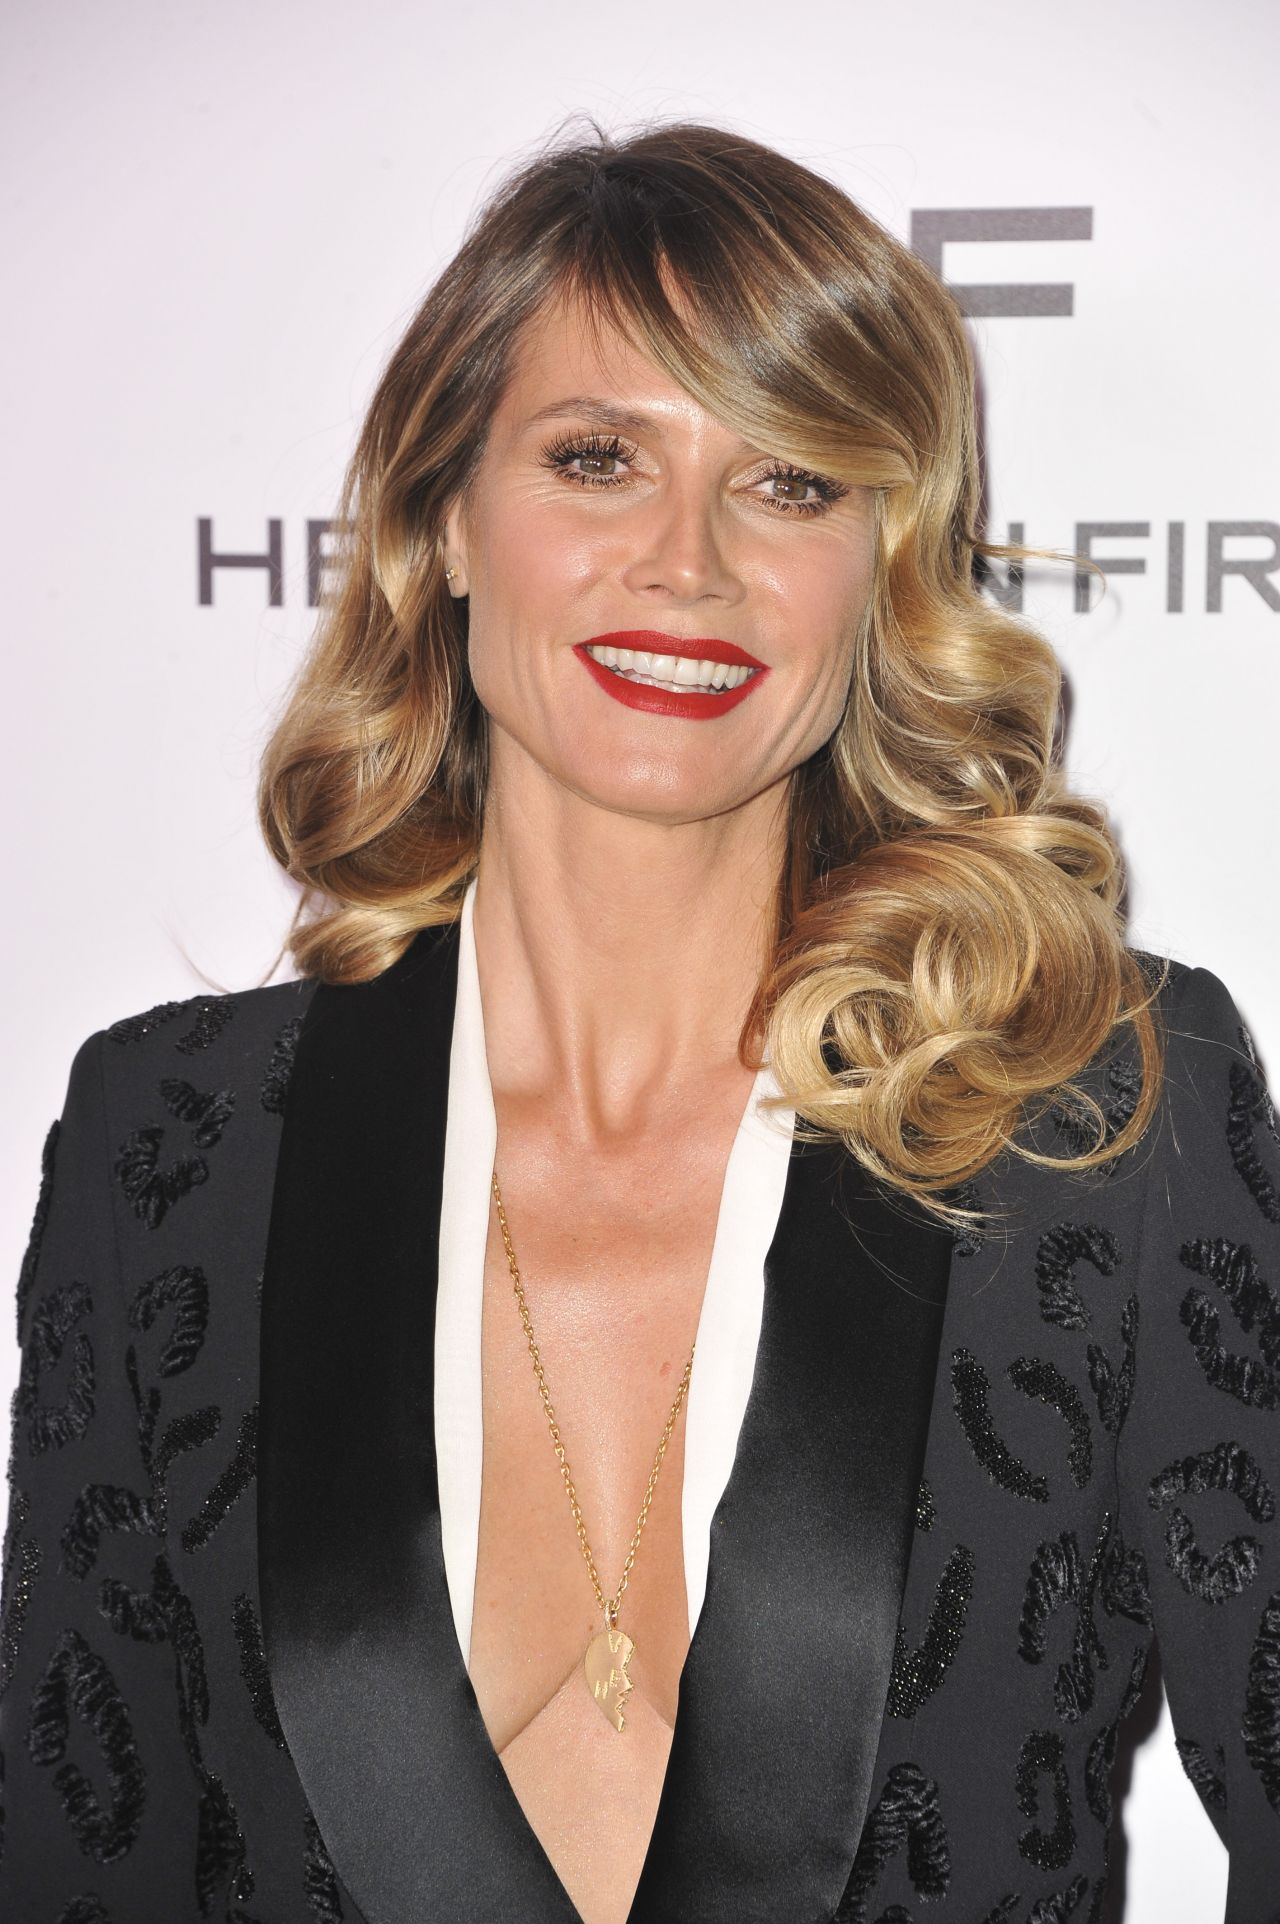 heidi klum photo gallery 2853 best heidi klum pics celebs. Black Bedroom Furniture Sets. Home Design Ideas